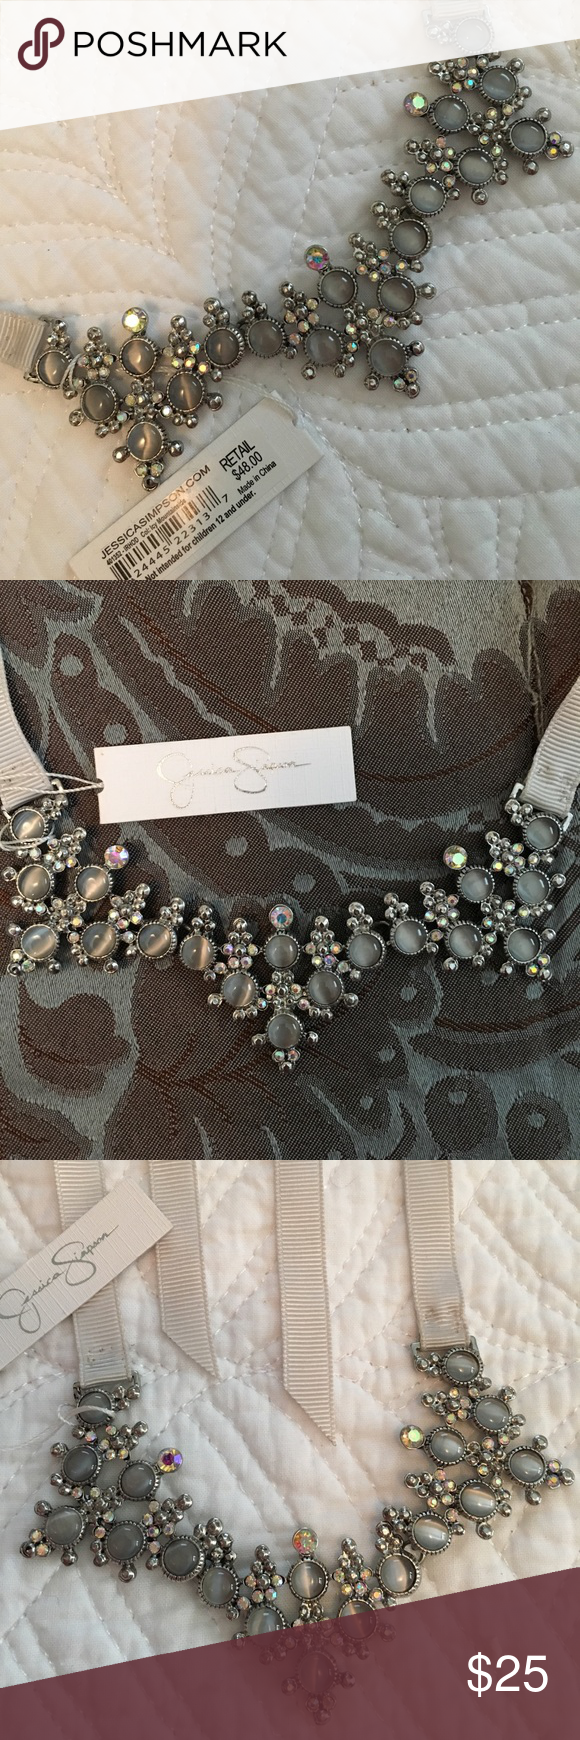 NWT Jessica Simpson Necklace Unique and beautiful -Jessica Simpson- crystals on an adjustable ribbon.  ❌ sorry no trades. Jessica Simpson Jewelry Necklaces